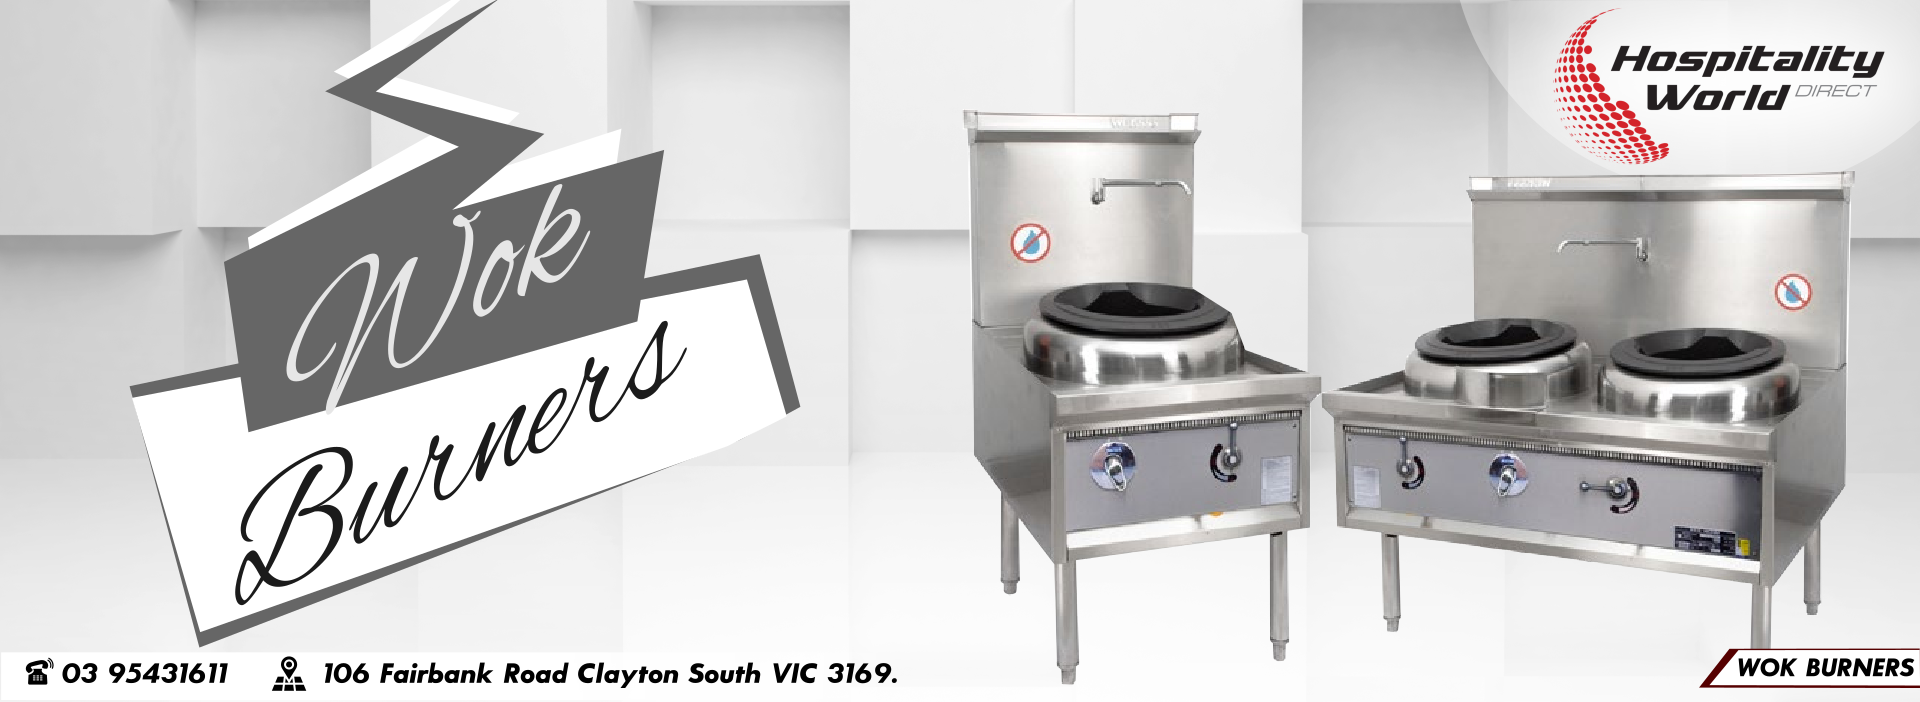 https://www.hwd.com.au/catering-equipment/cooking-equipment/woks-and-asian-cooking